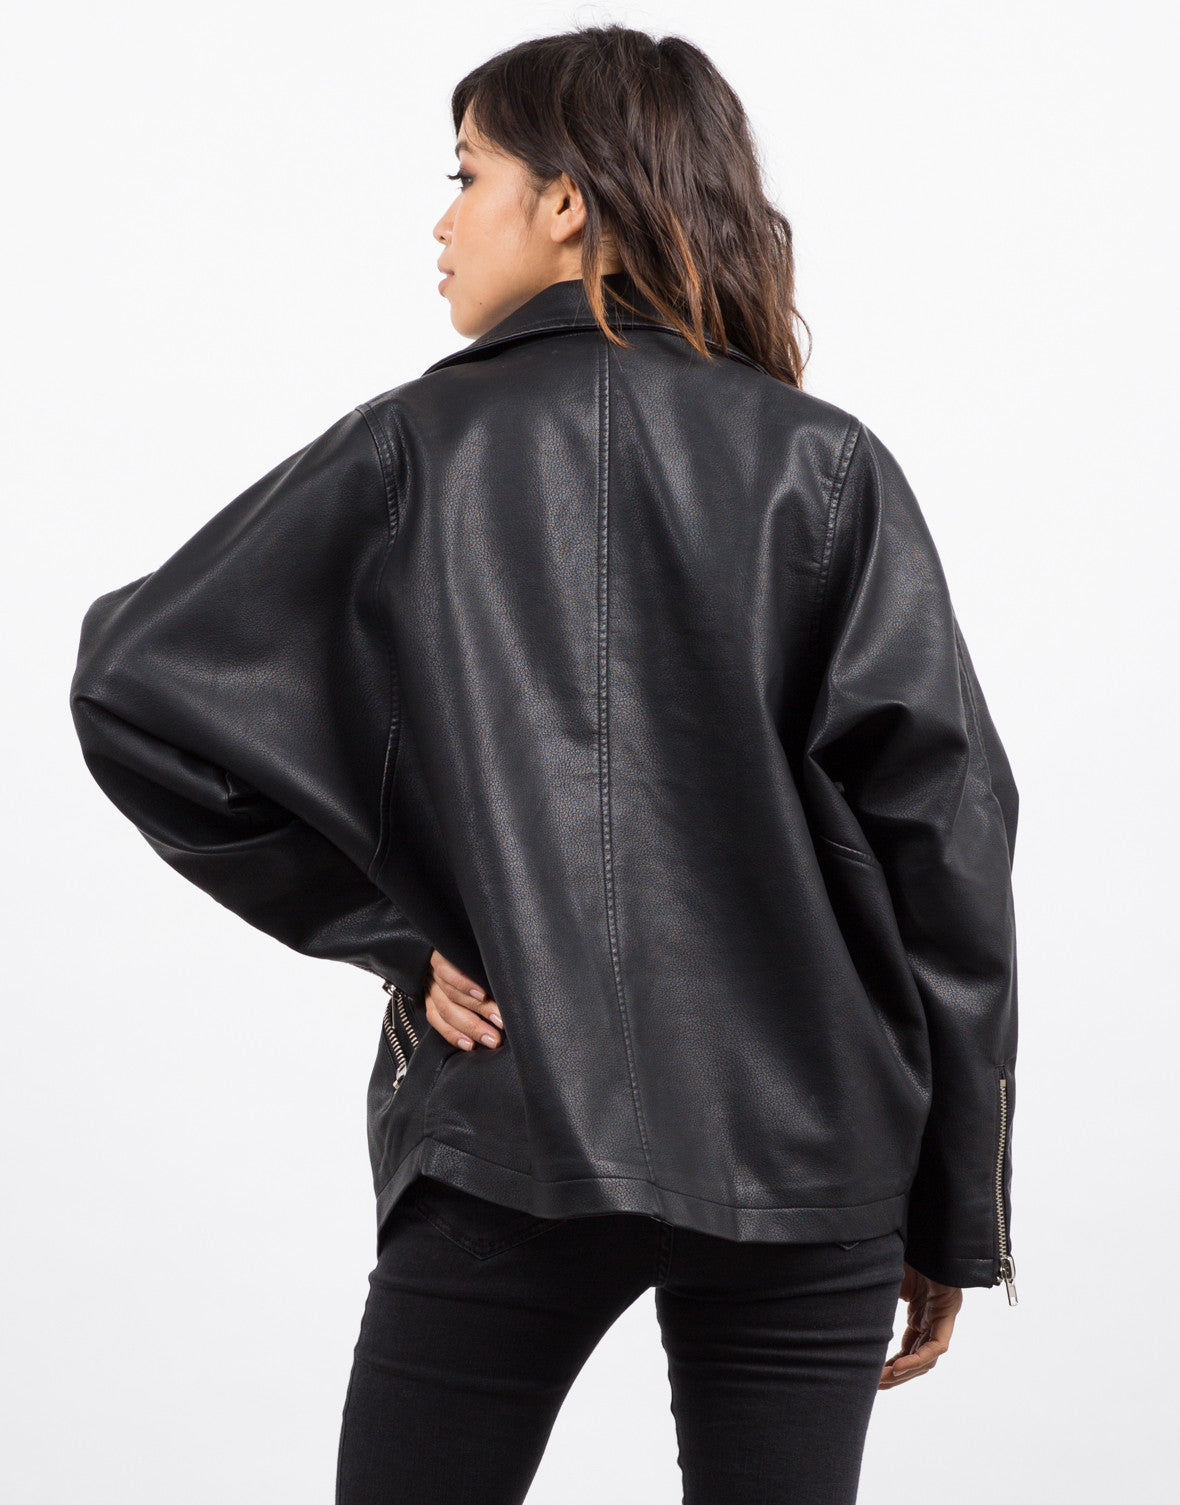 Back View of Oversized Leather Jacket